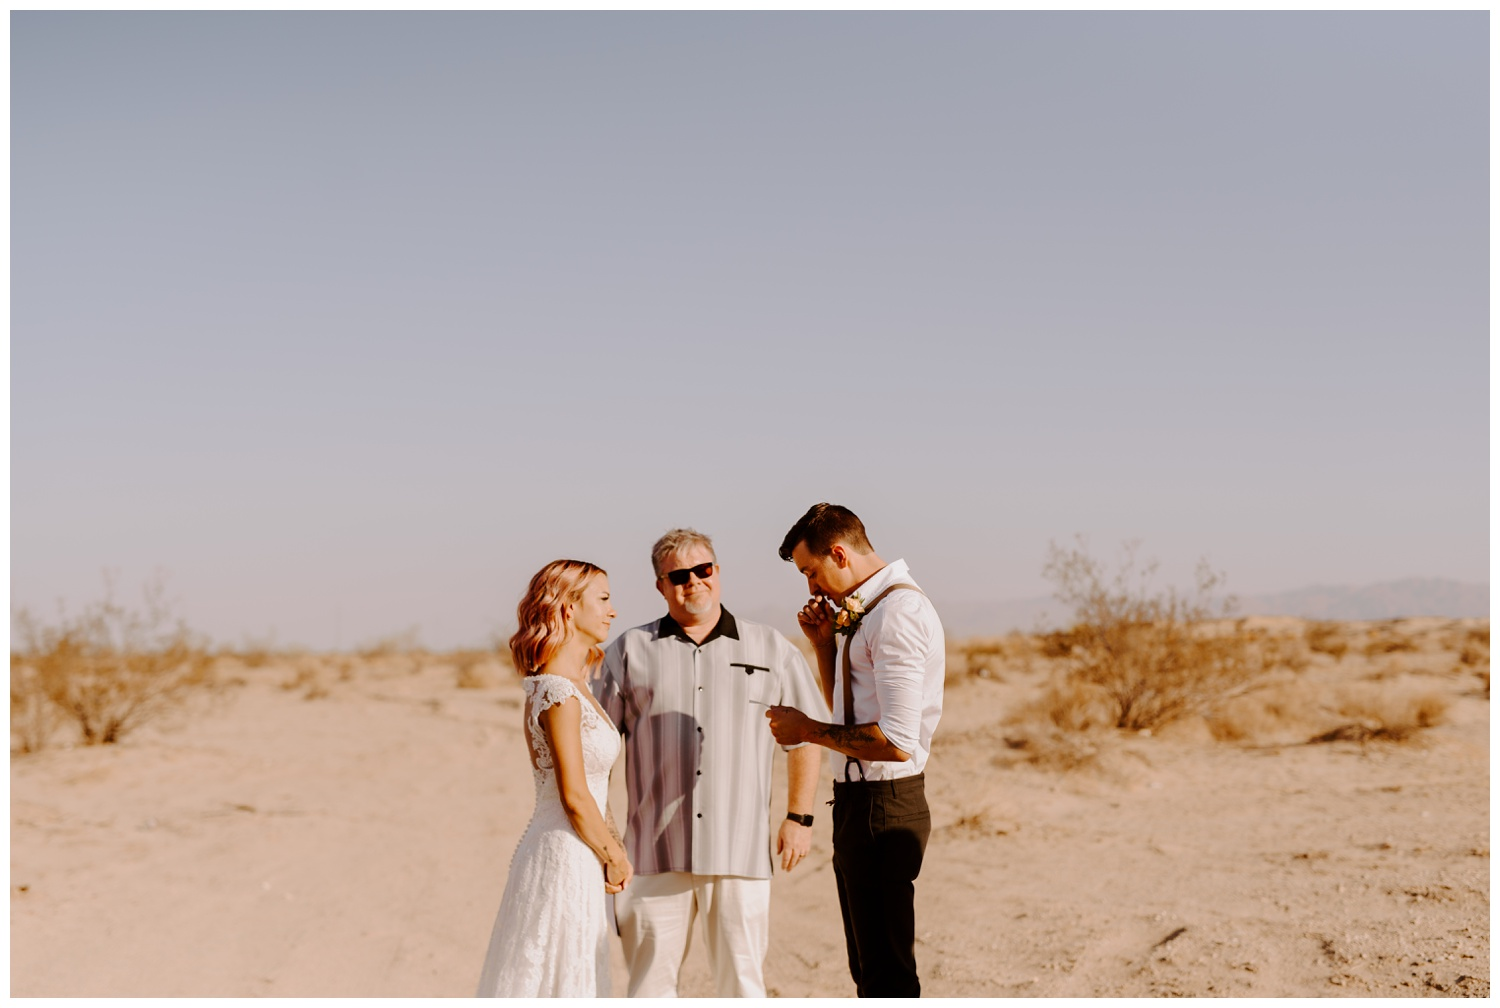 Salvation Mountain Elopement Palm Springs Pink Hair Bride - Jessica Heron Images_0136.jpg